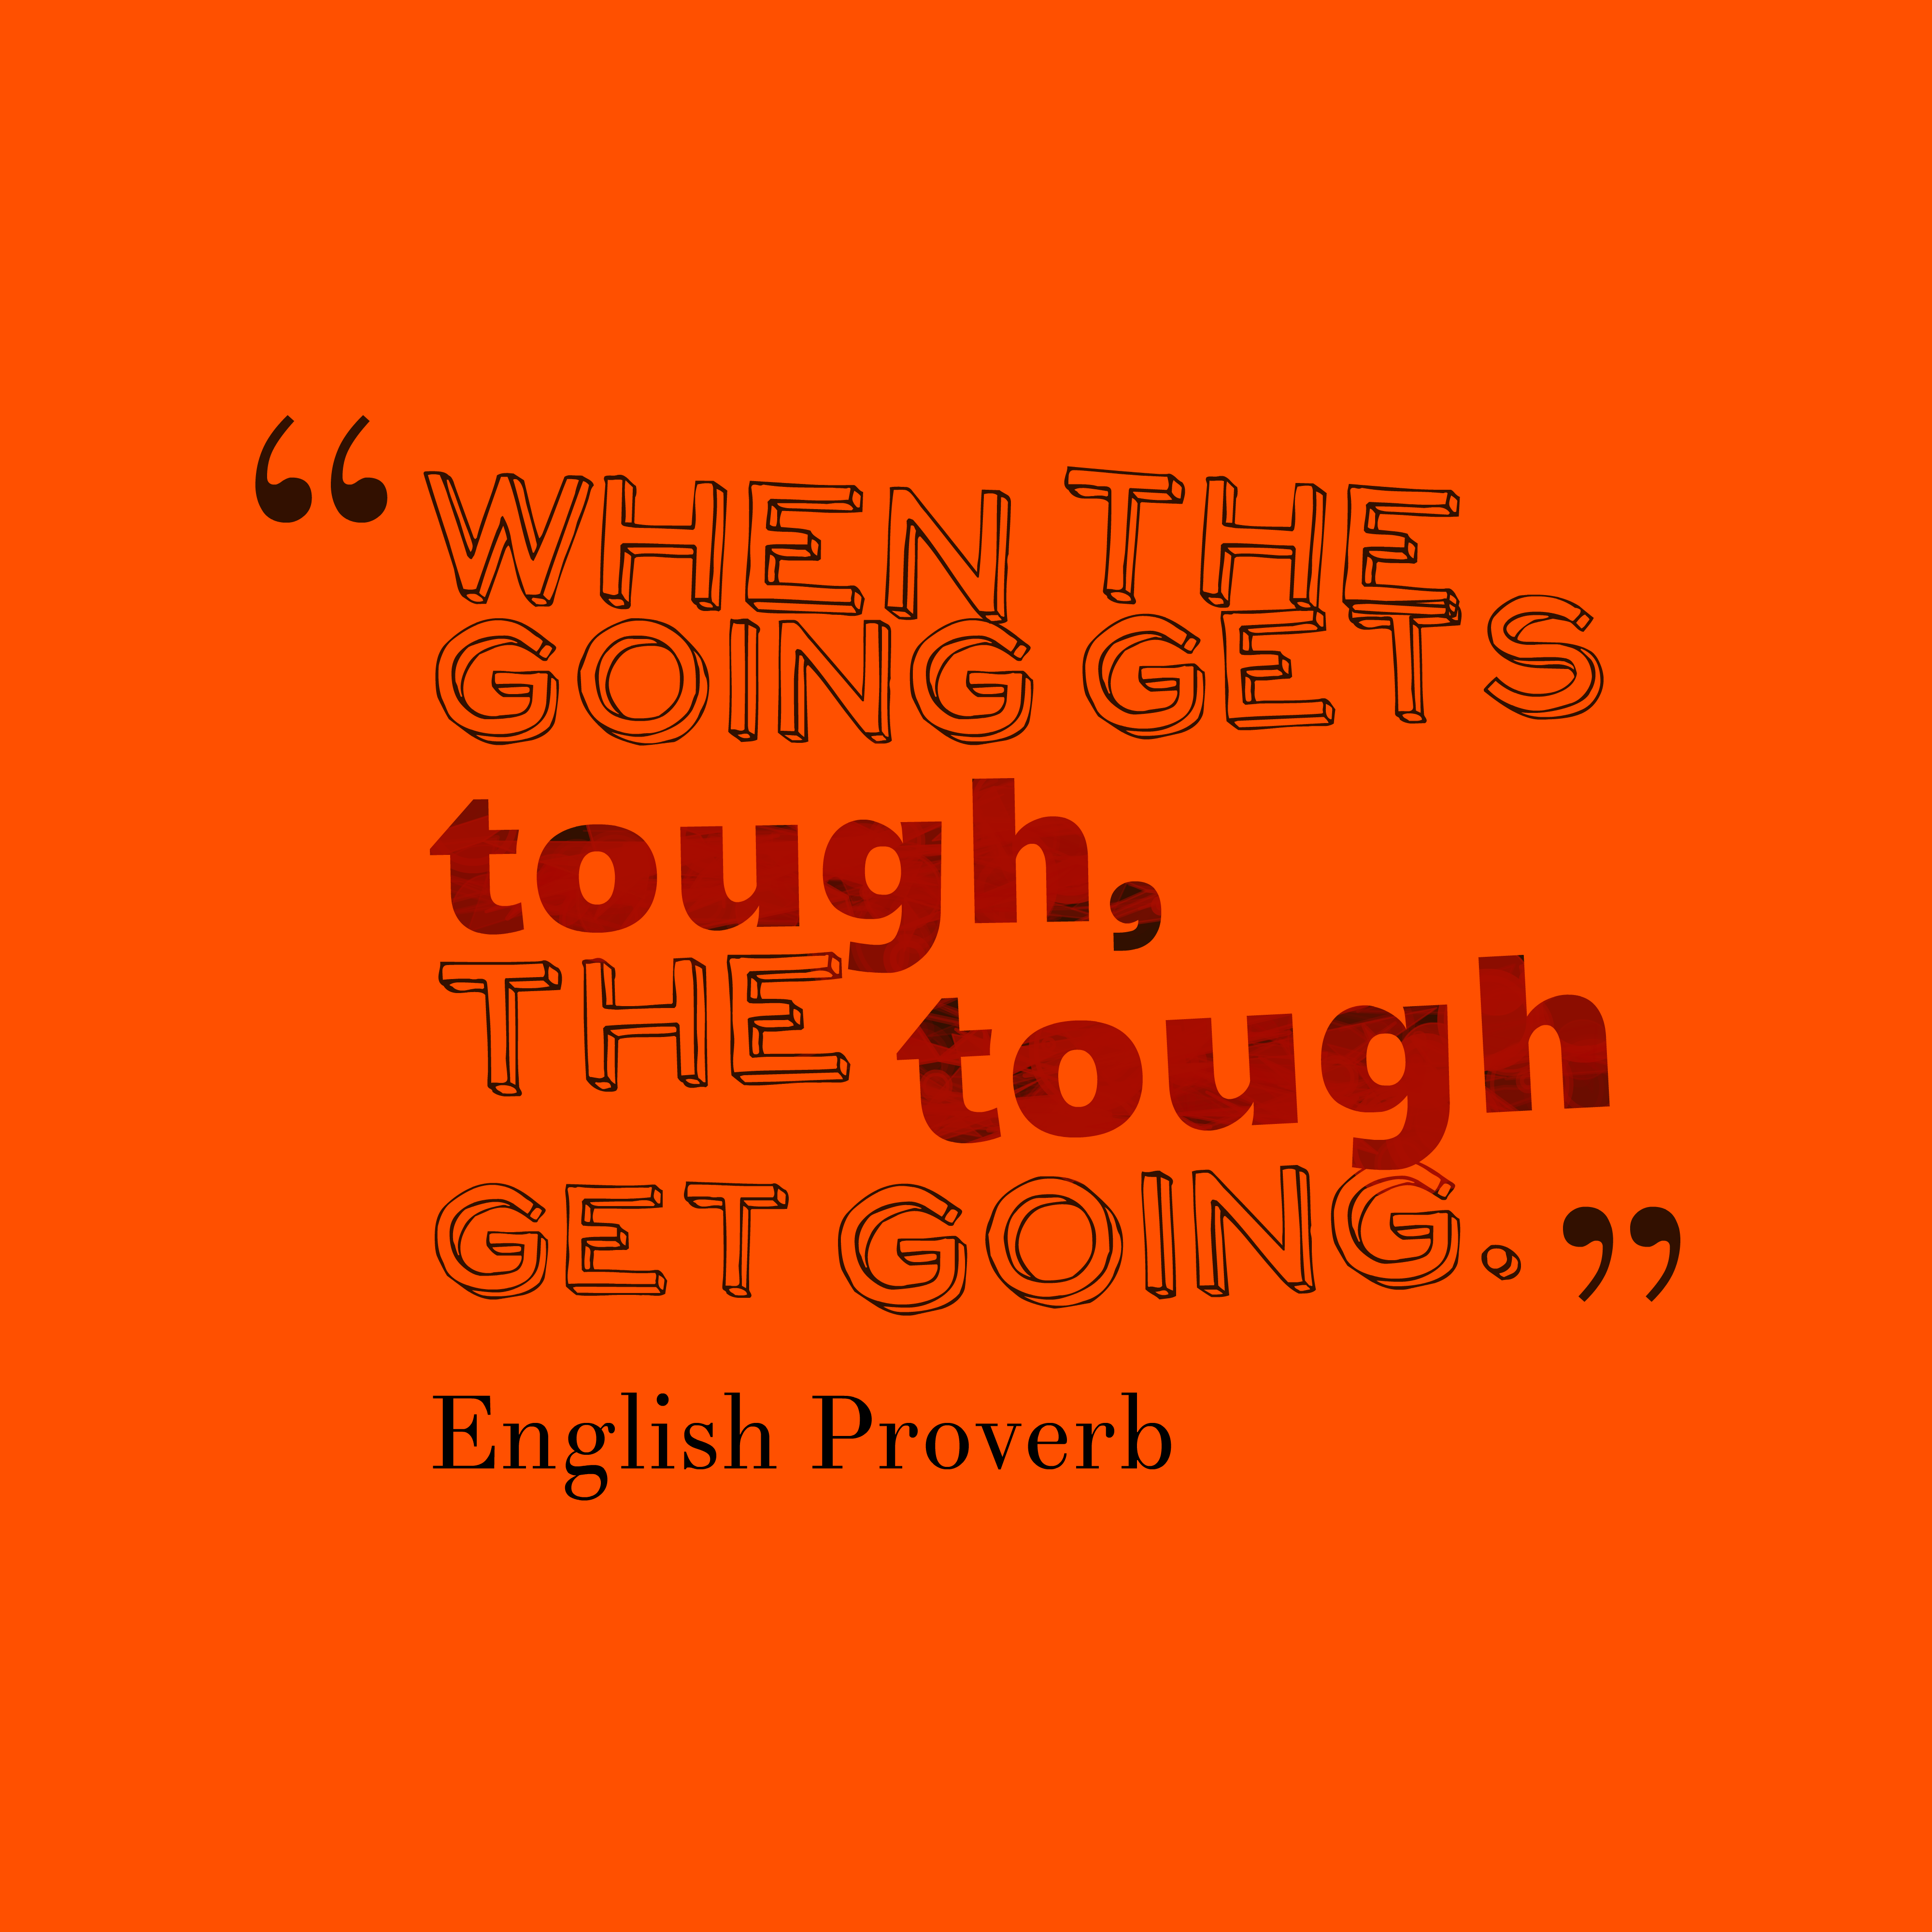 Quotes image of When the going gets tough, the tough get going.